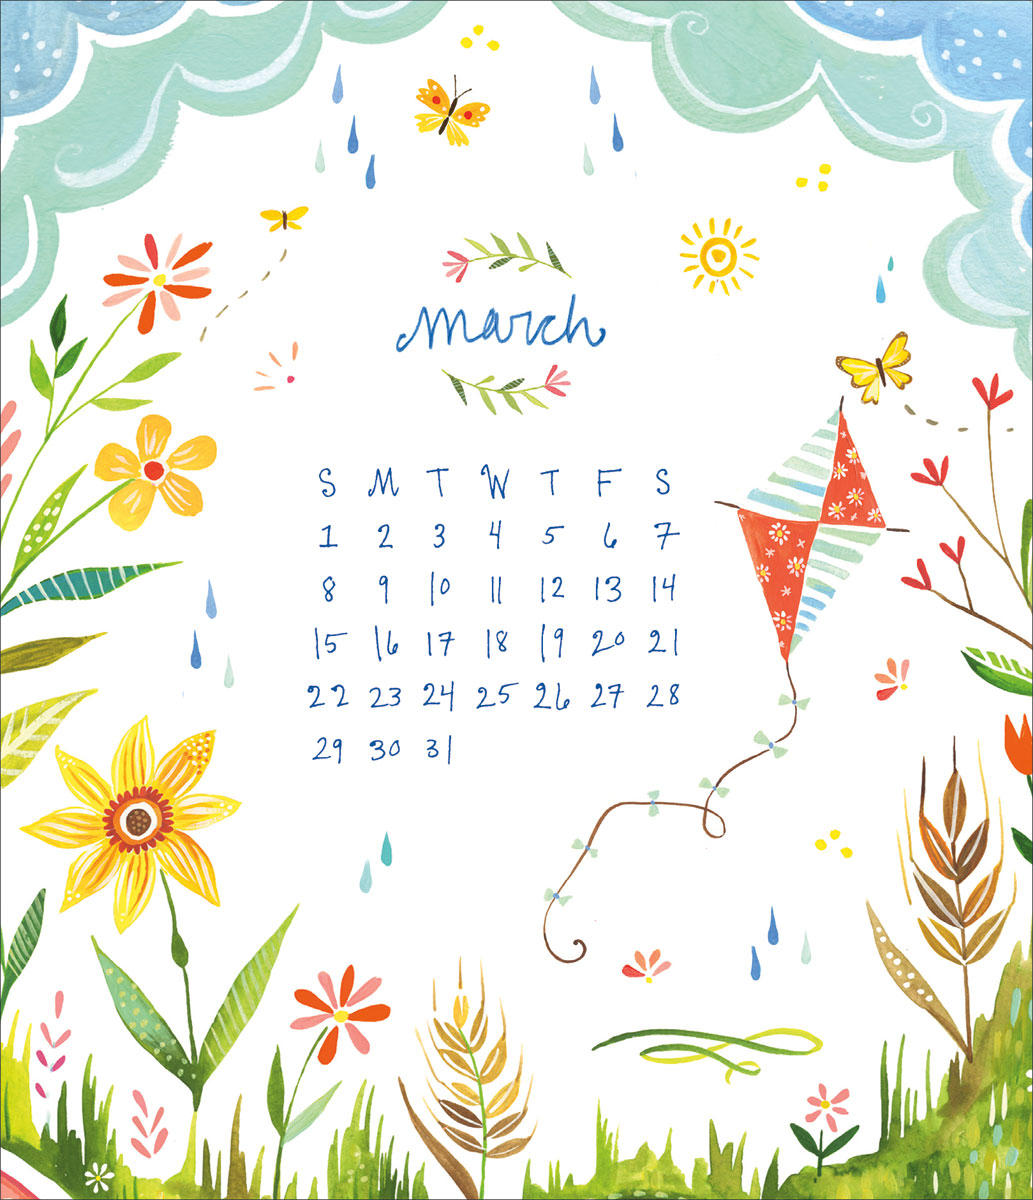 download March 2015 Calendar Wallpaper Pictures and JPG GIF 1033x1200